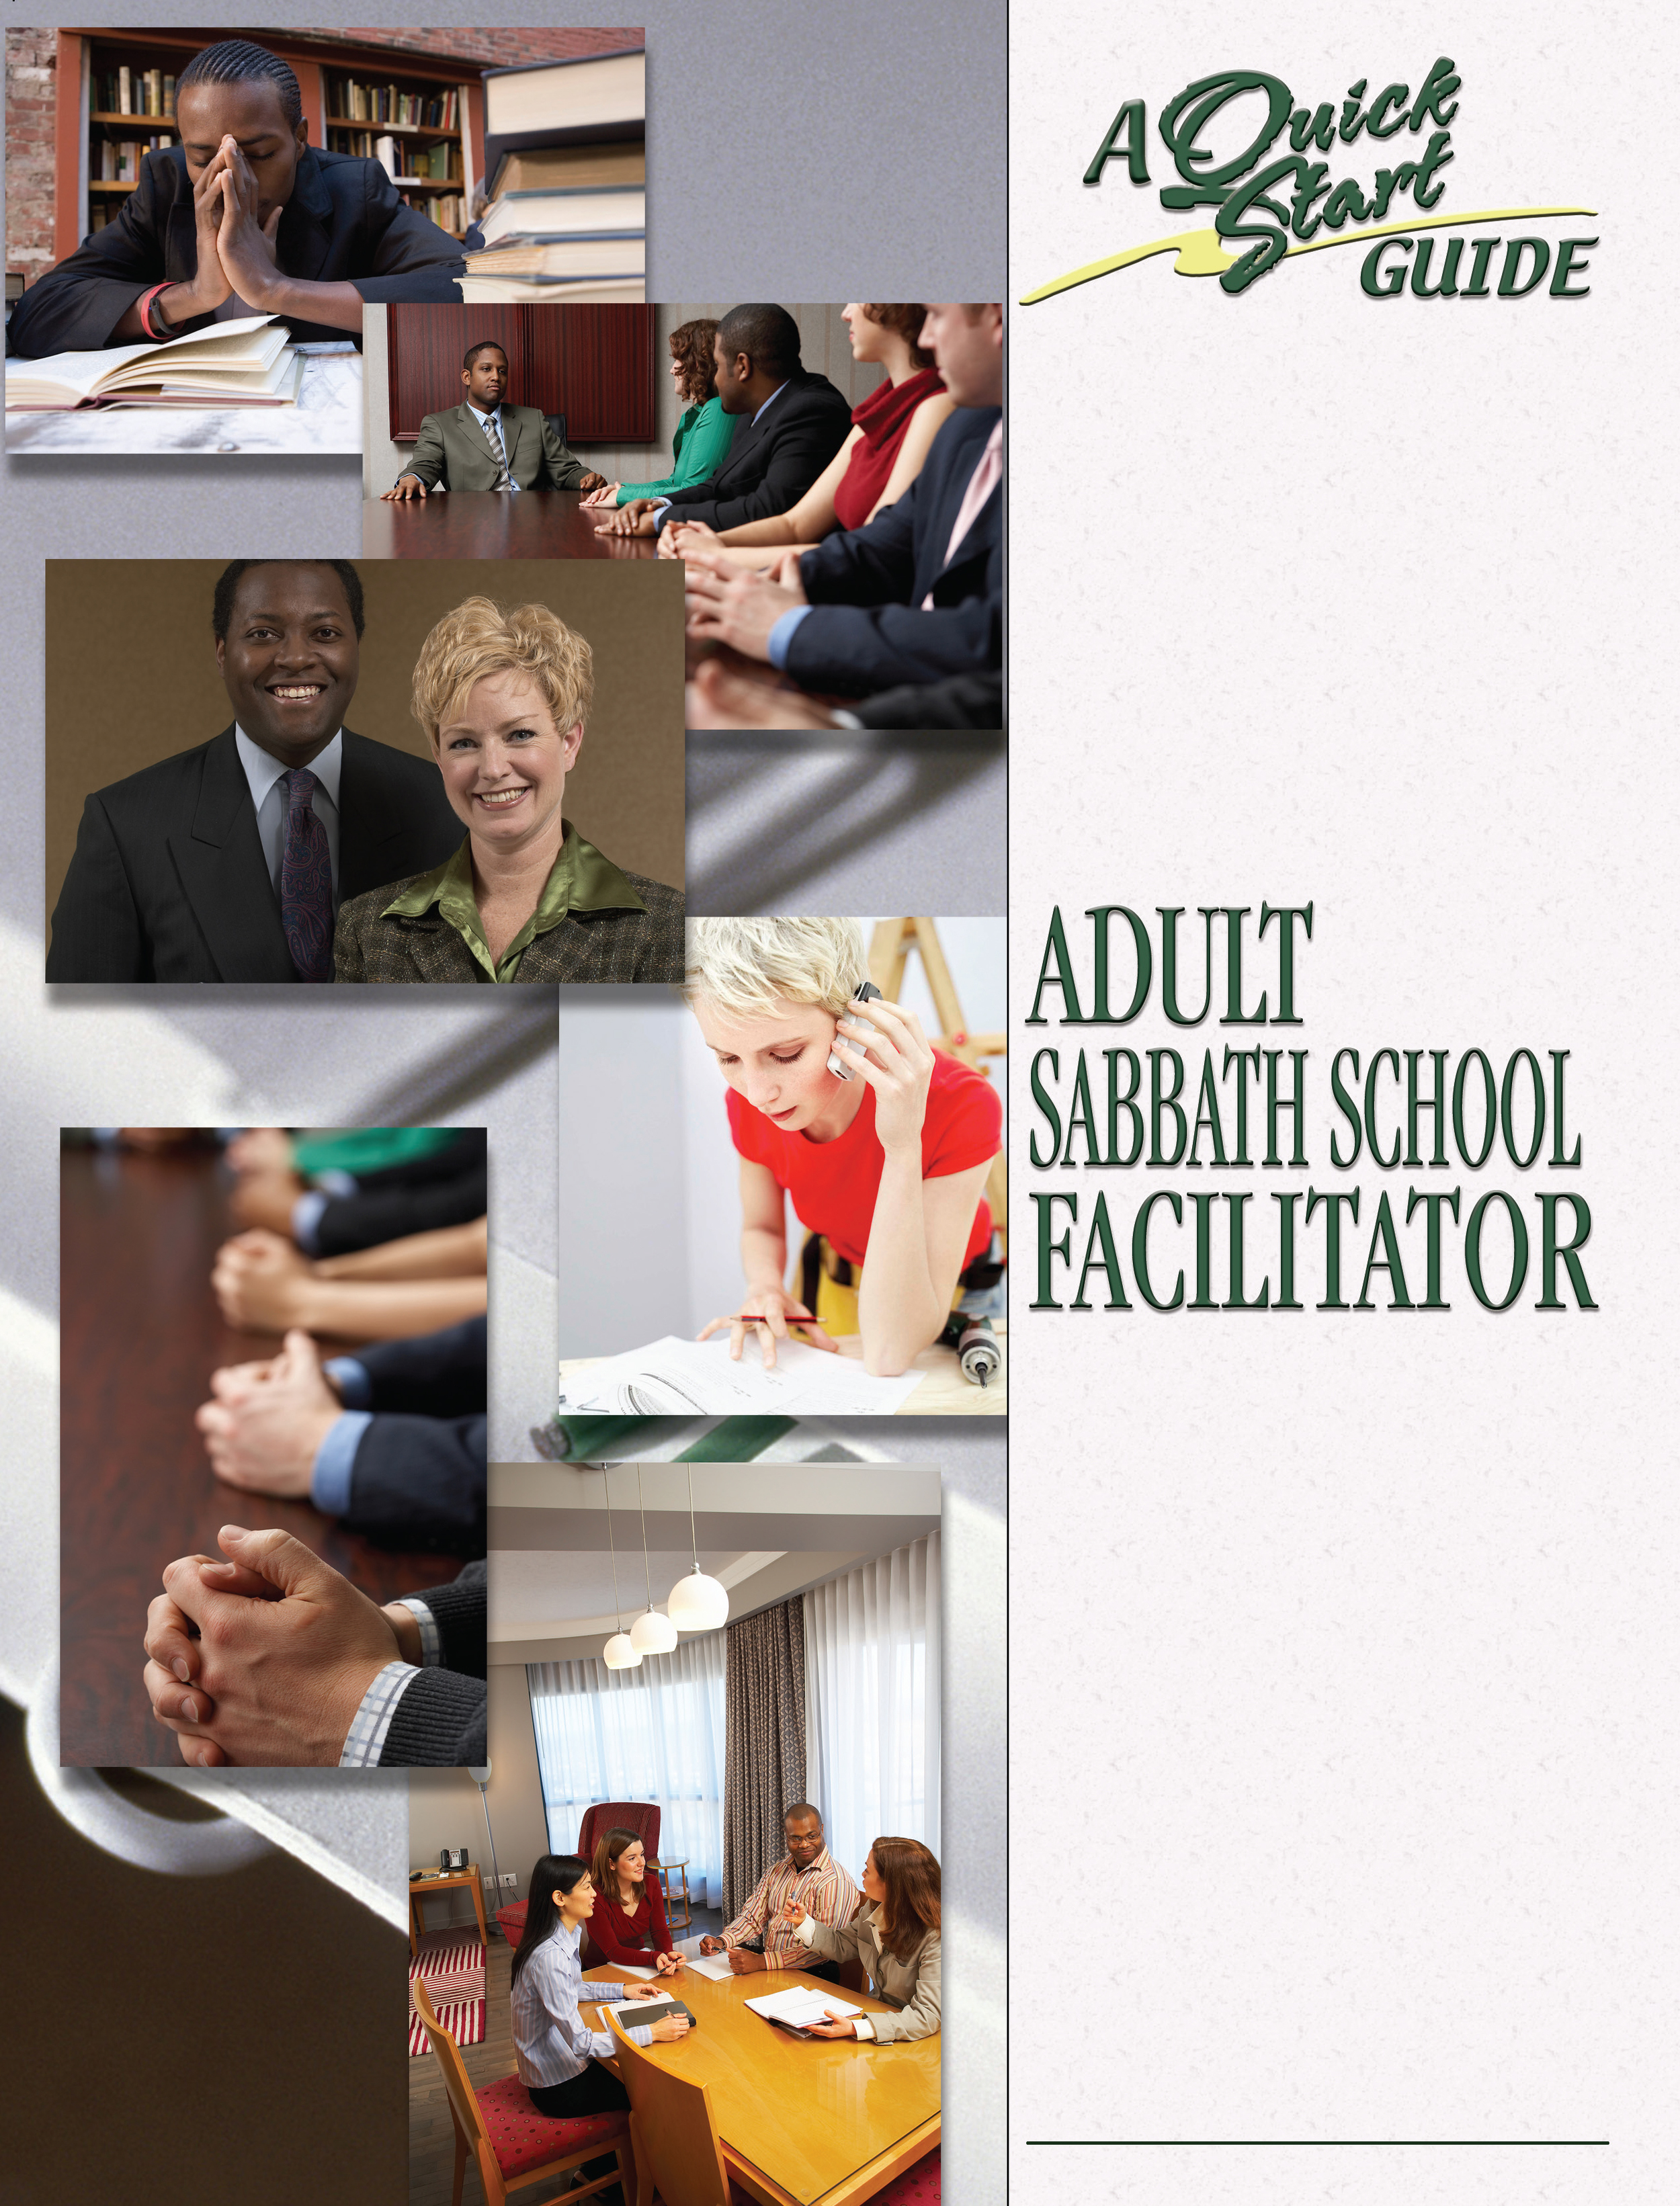 556264 Adult SS Facilitator QSG-1.jpg